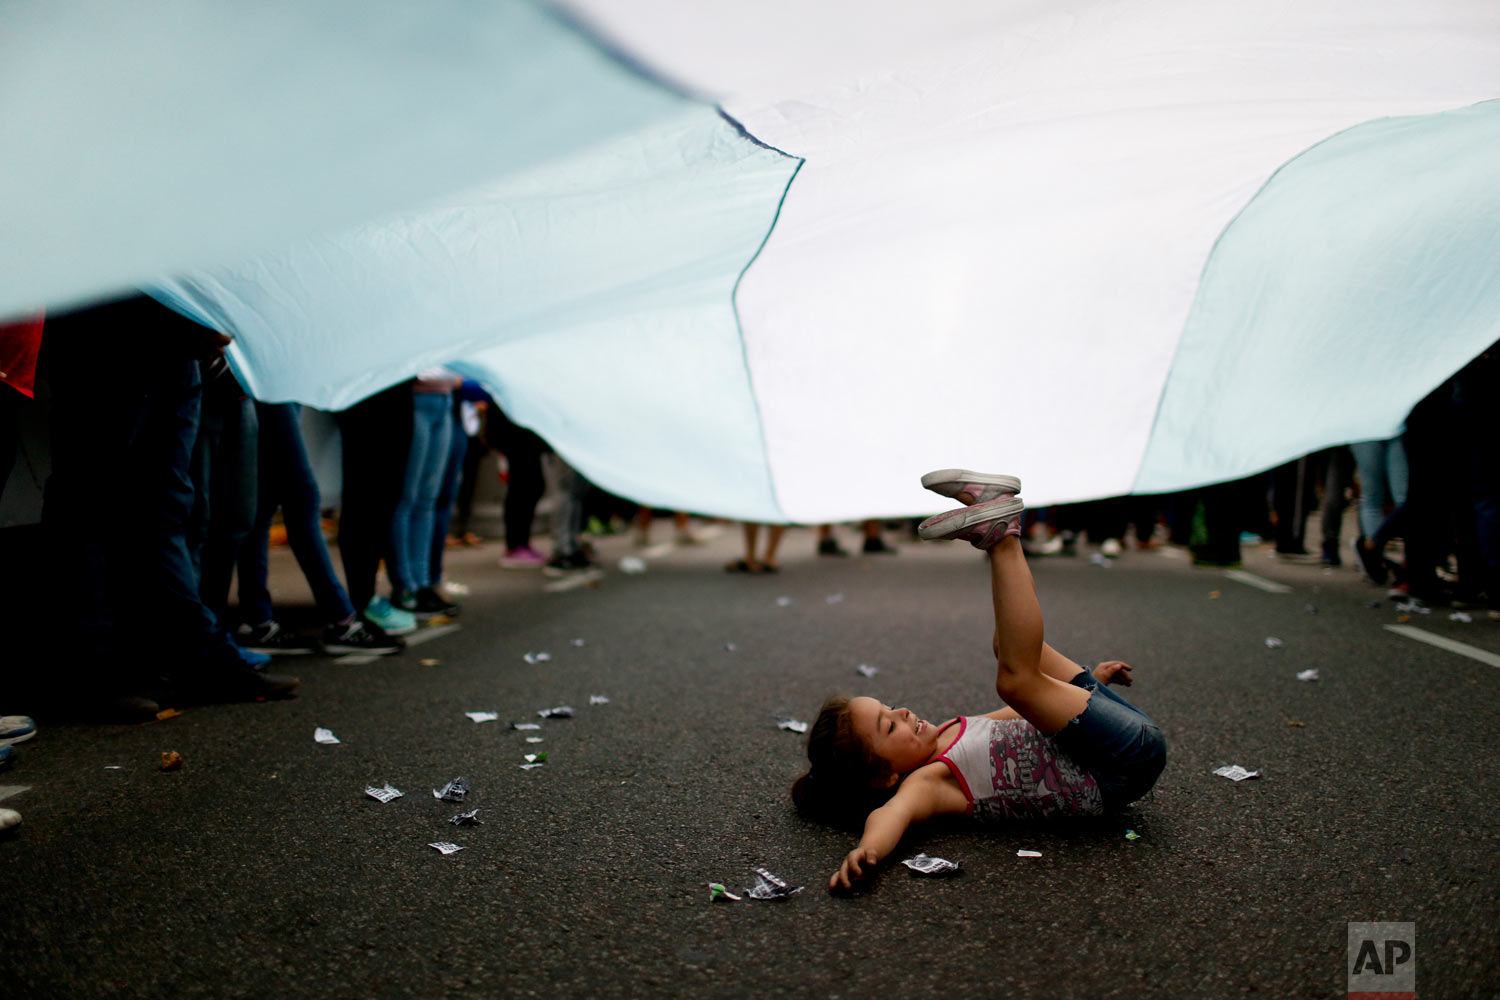 A girl plays under an Argentine flag as demonstrators protest the increase in public service fees in Buenos Aires, Argentina, Jan. 10, 2019. (AP Photo/Natacha Pisarenko)